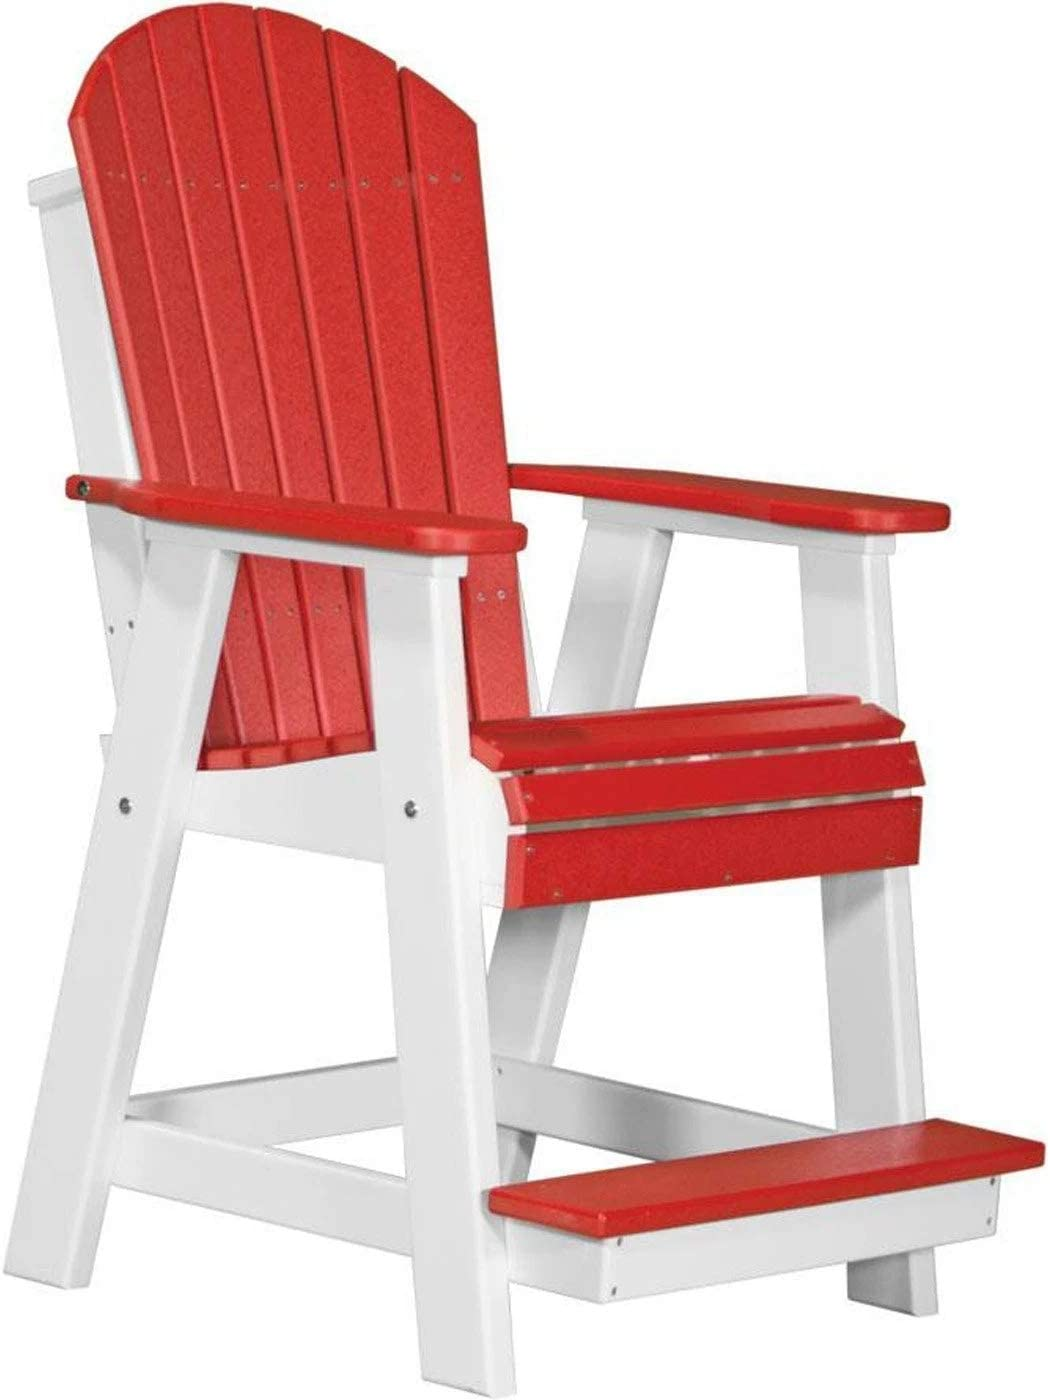 LuxCraft Recycled Plastic Adirondack Balcony Chair